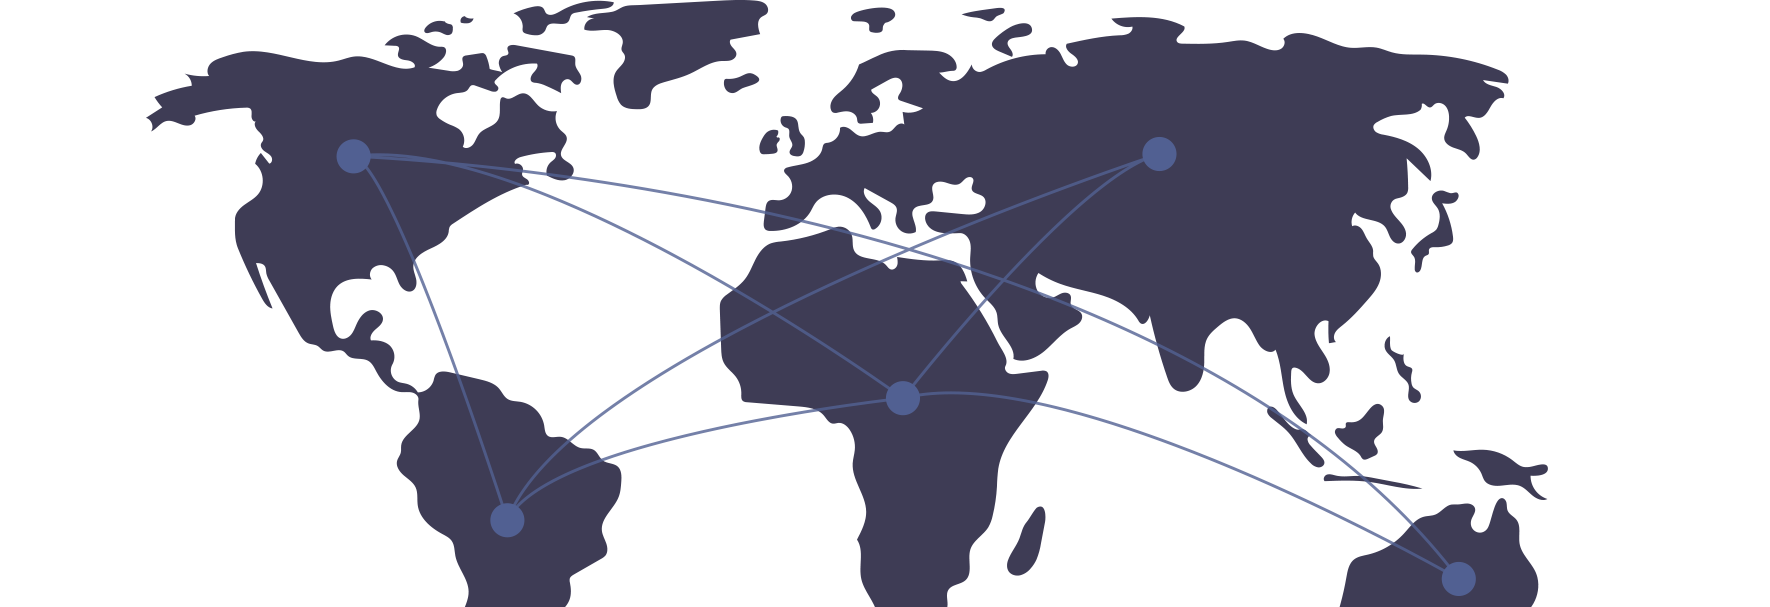 world-connected